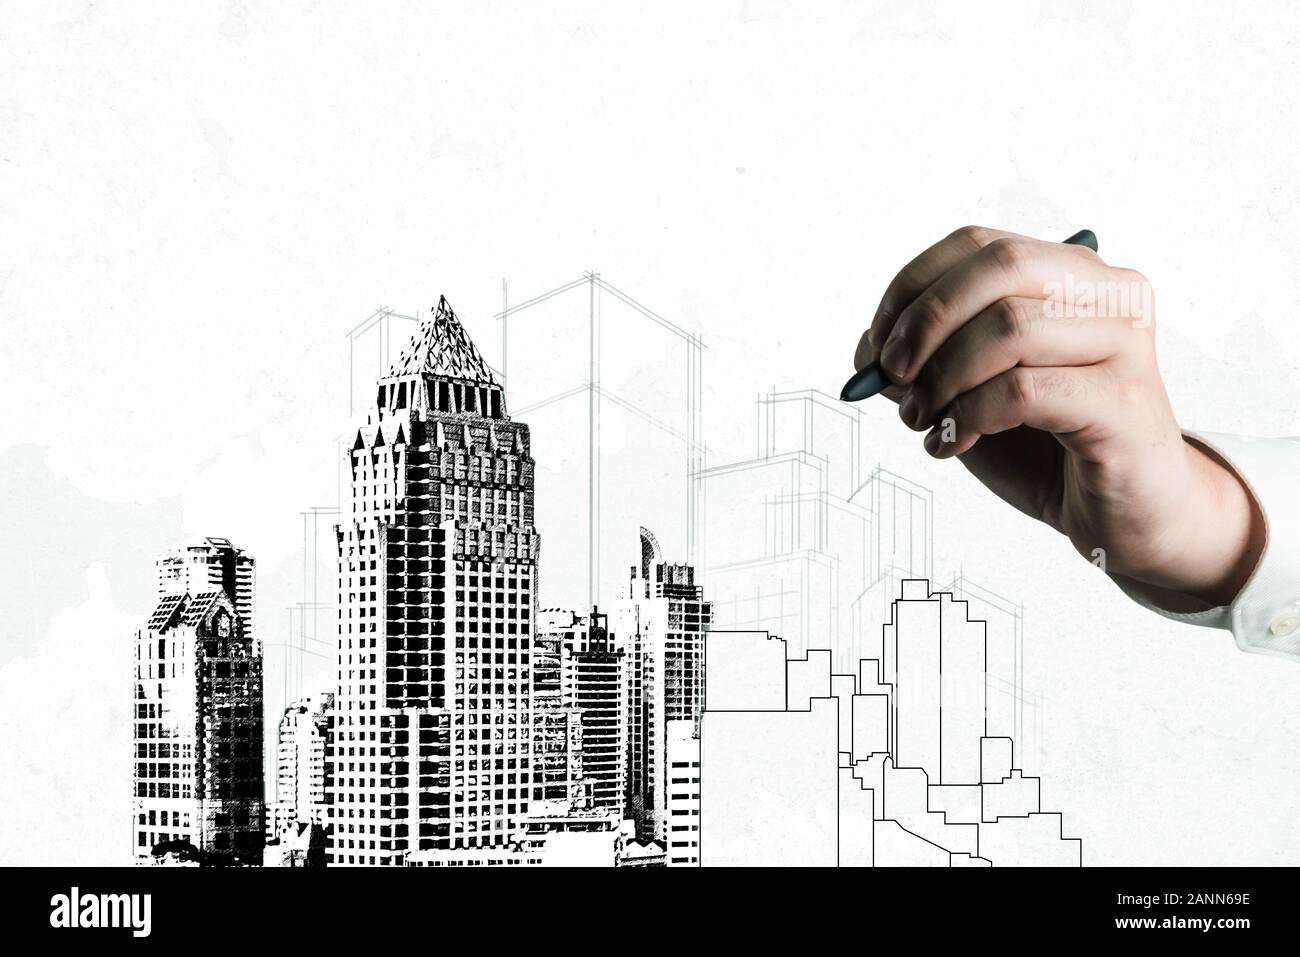 City civil planning and real estate development - Architect people looking at abstract city sketch drawing to design creative future city building. Ar Stock Photo